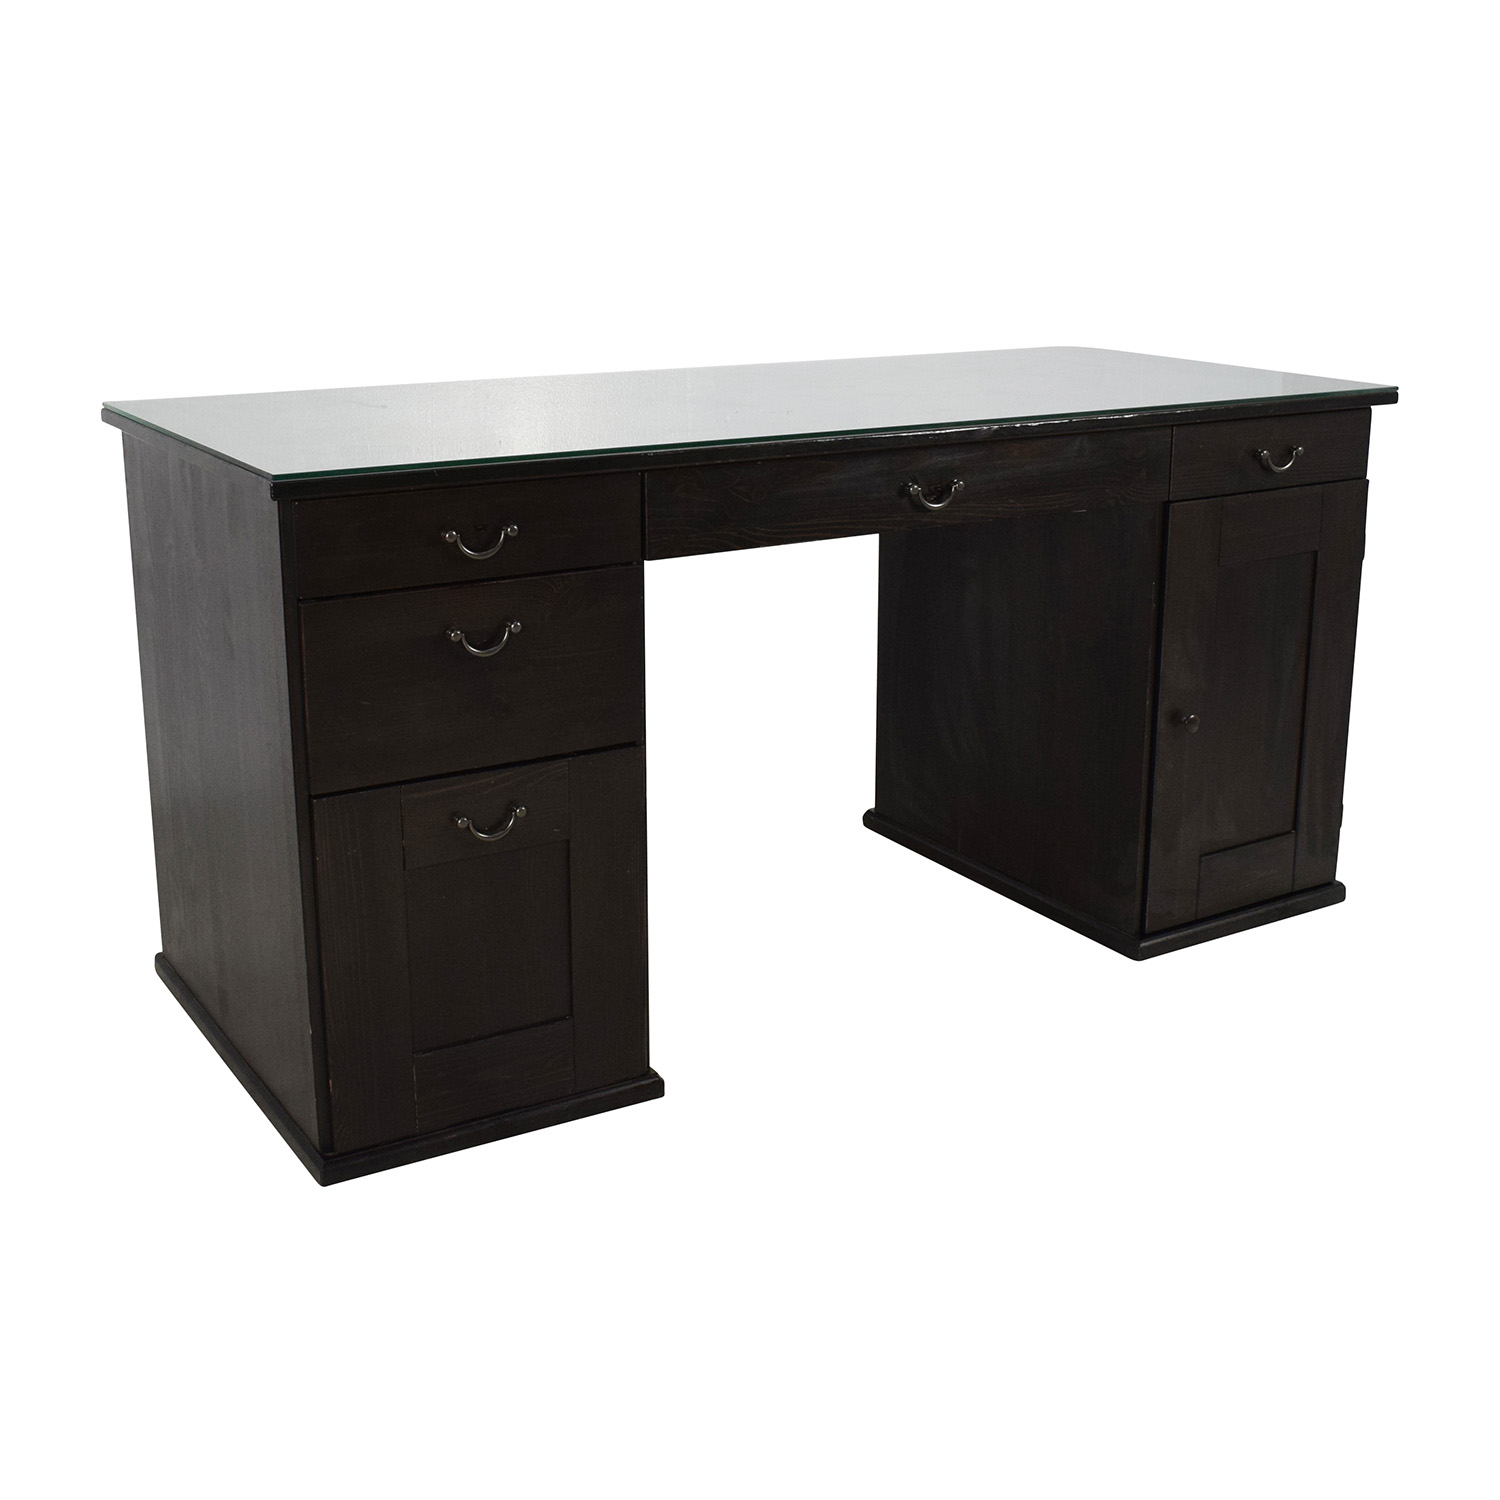 table bureau ikea lisabo desk ikea hilver table ikea bekant desk birch veneer white ikea. Black Bedroom Furniture Sets. Home Design Ideas